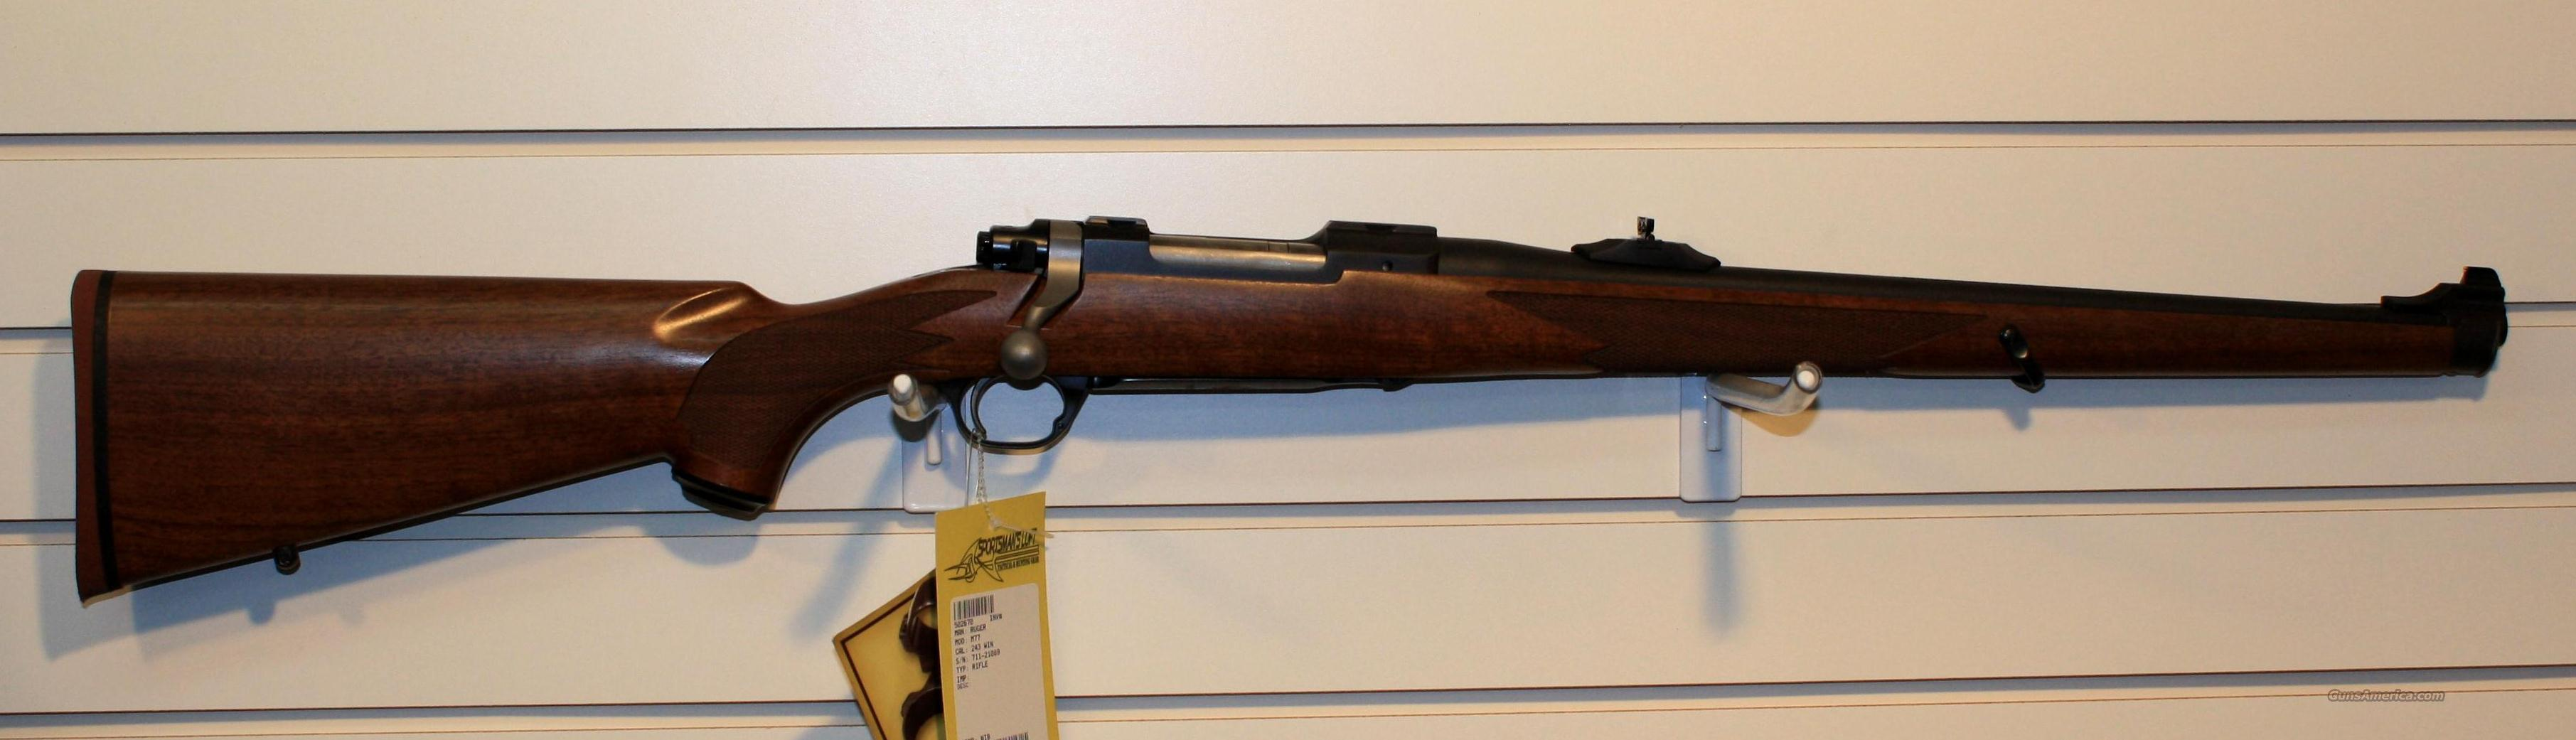 RUGER M77 HAWKEYE MANNLICHER STOCK .243 NICE !!  Guns > Rifles > Ruger Rifles > Model 77